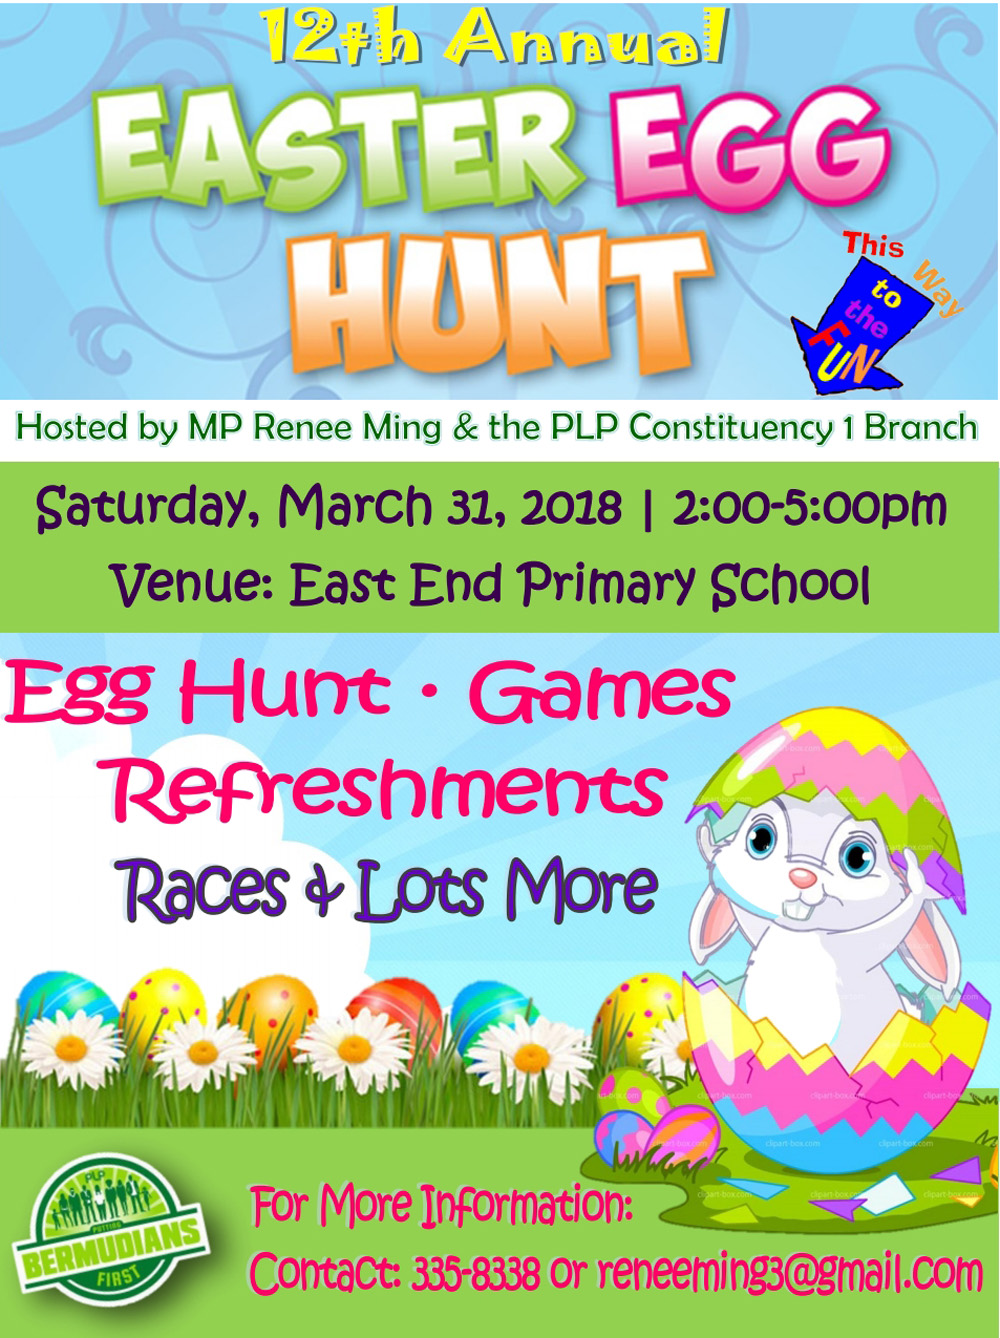 Easter Egg Hunt Bermuda March 22 2017